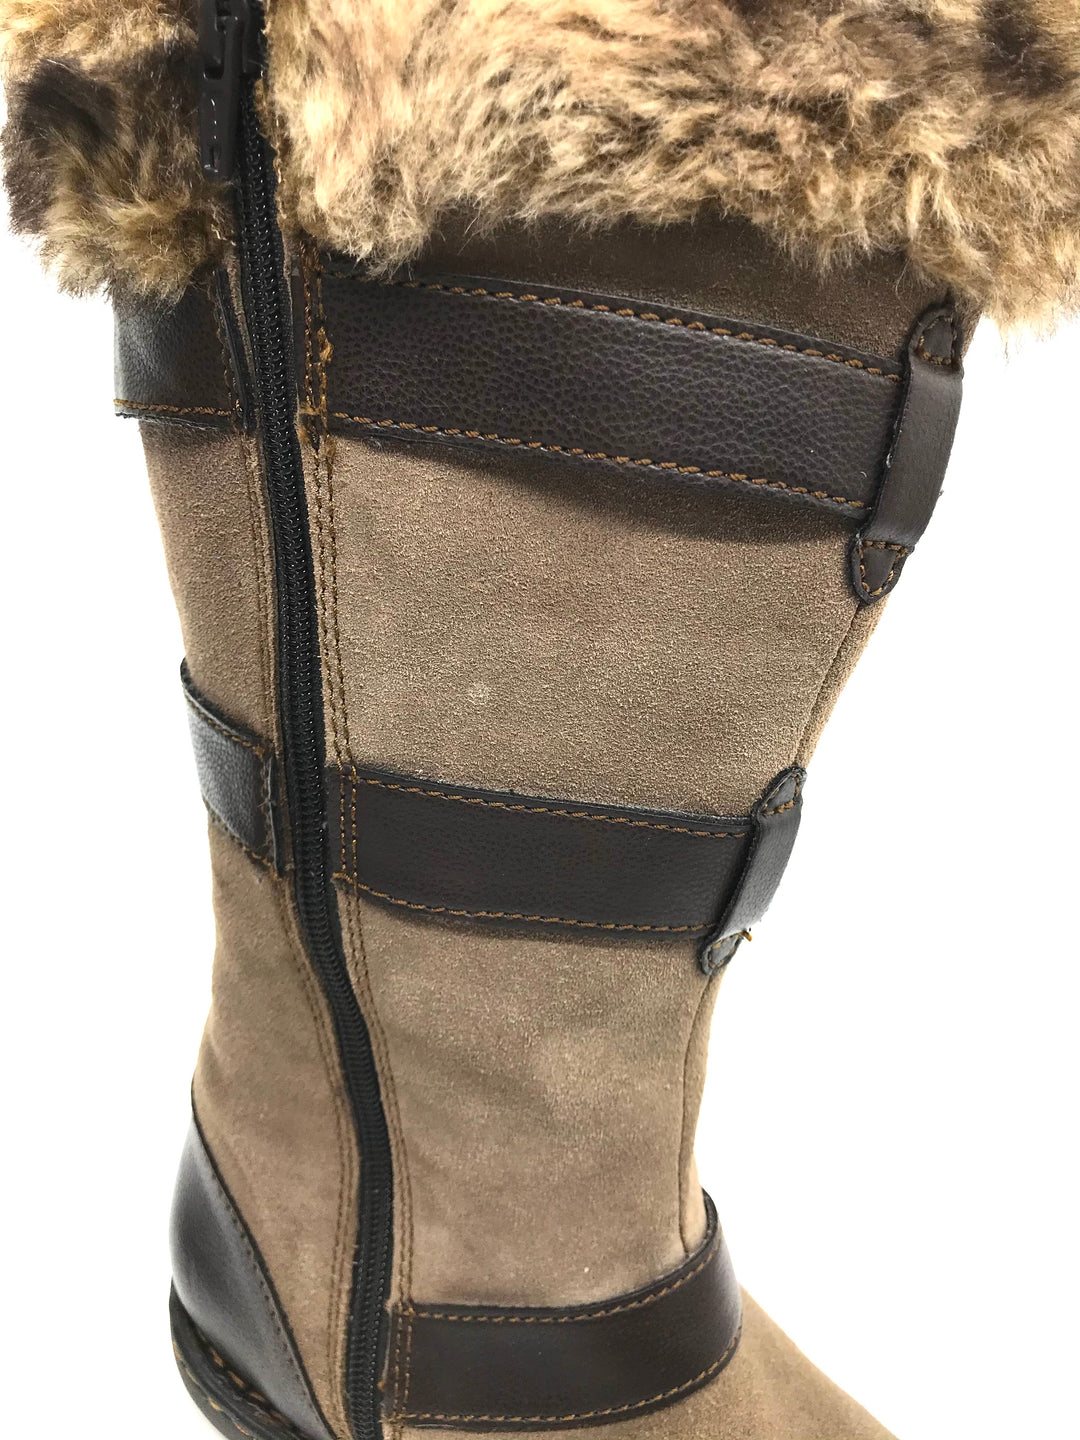 Boots Ankle By Boc  Size: 8 - BRAND: BOC <BR>STYLE: BOOTS ANKLE <BR>COLOR: BROWN <BR>SIZE: 8 <BR>SKU: 262-26275-73082<BR><BR>AS IS WEAR TO FABRIC, SMALL SPOTS